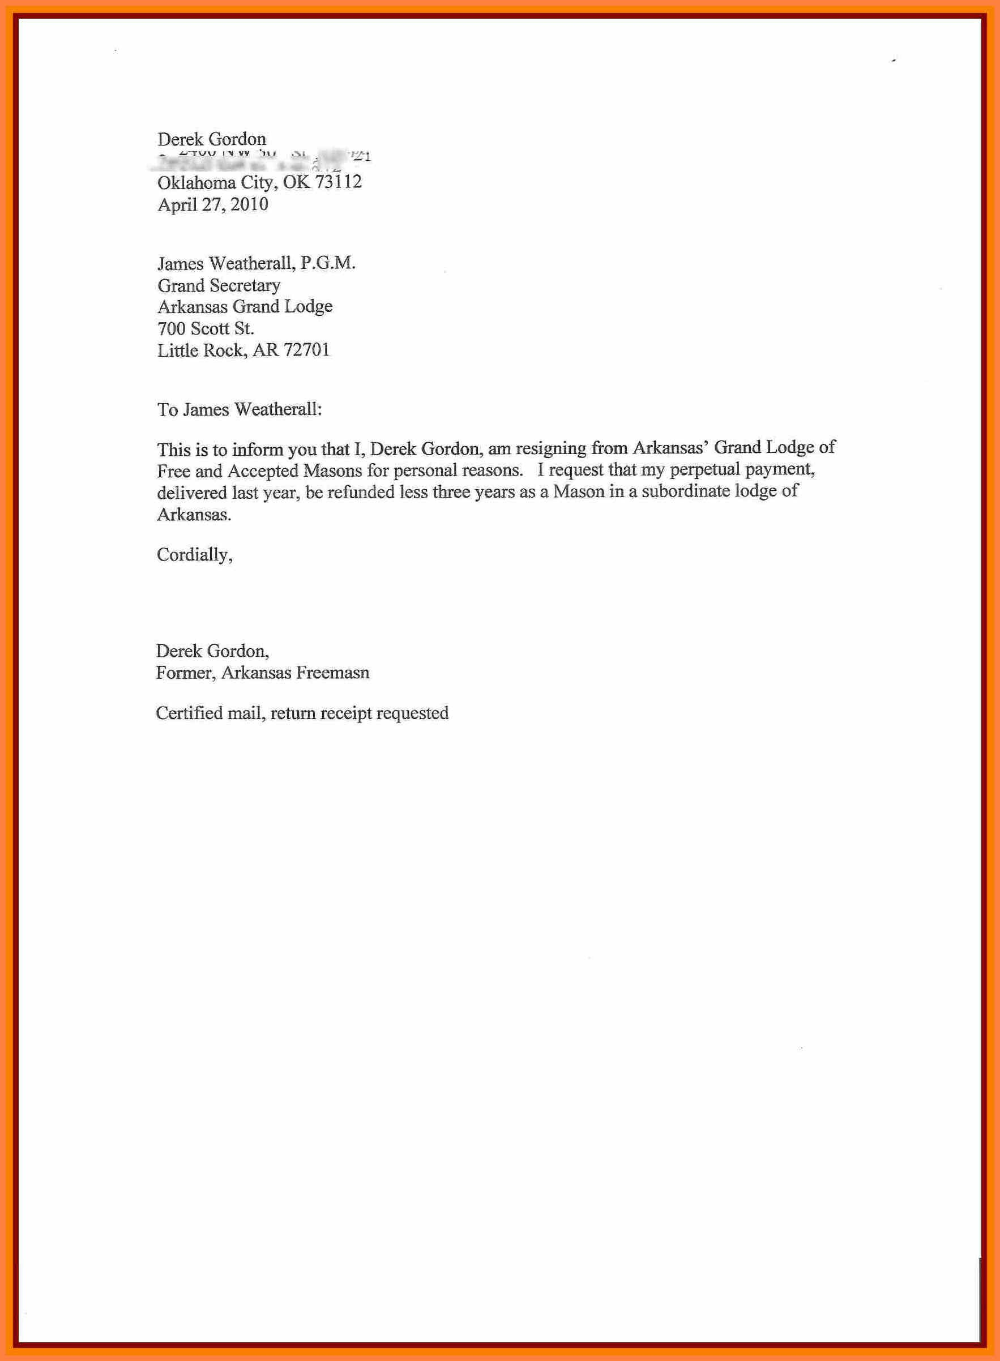 Sample Of Resignation Letter For Personal Reasons Corpus